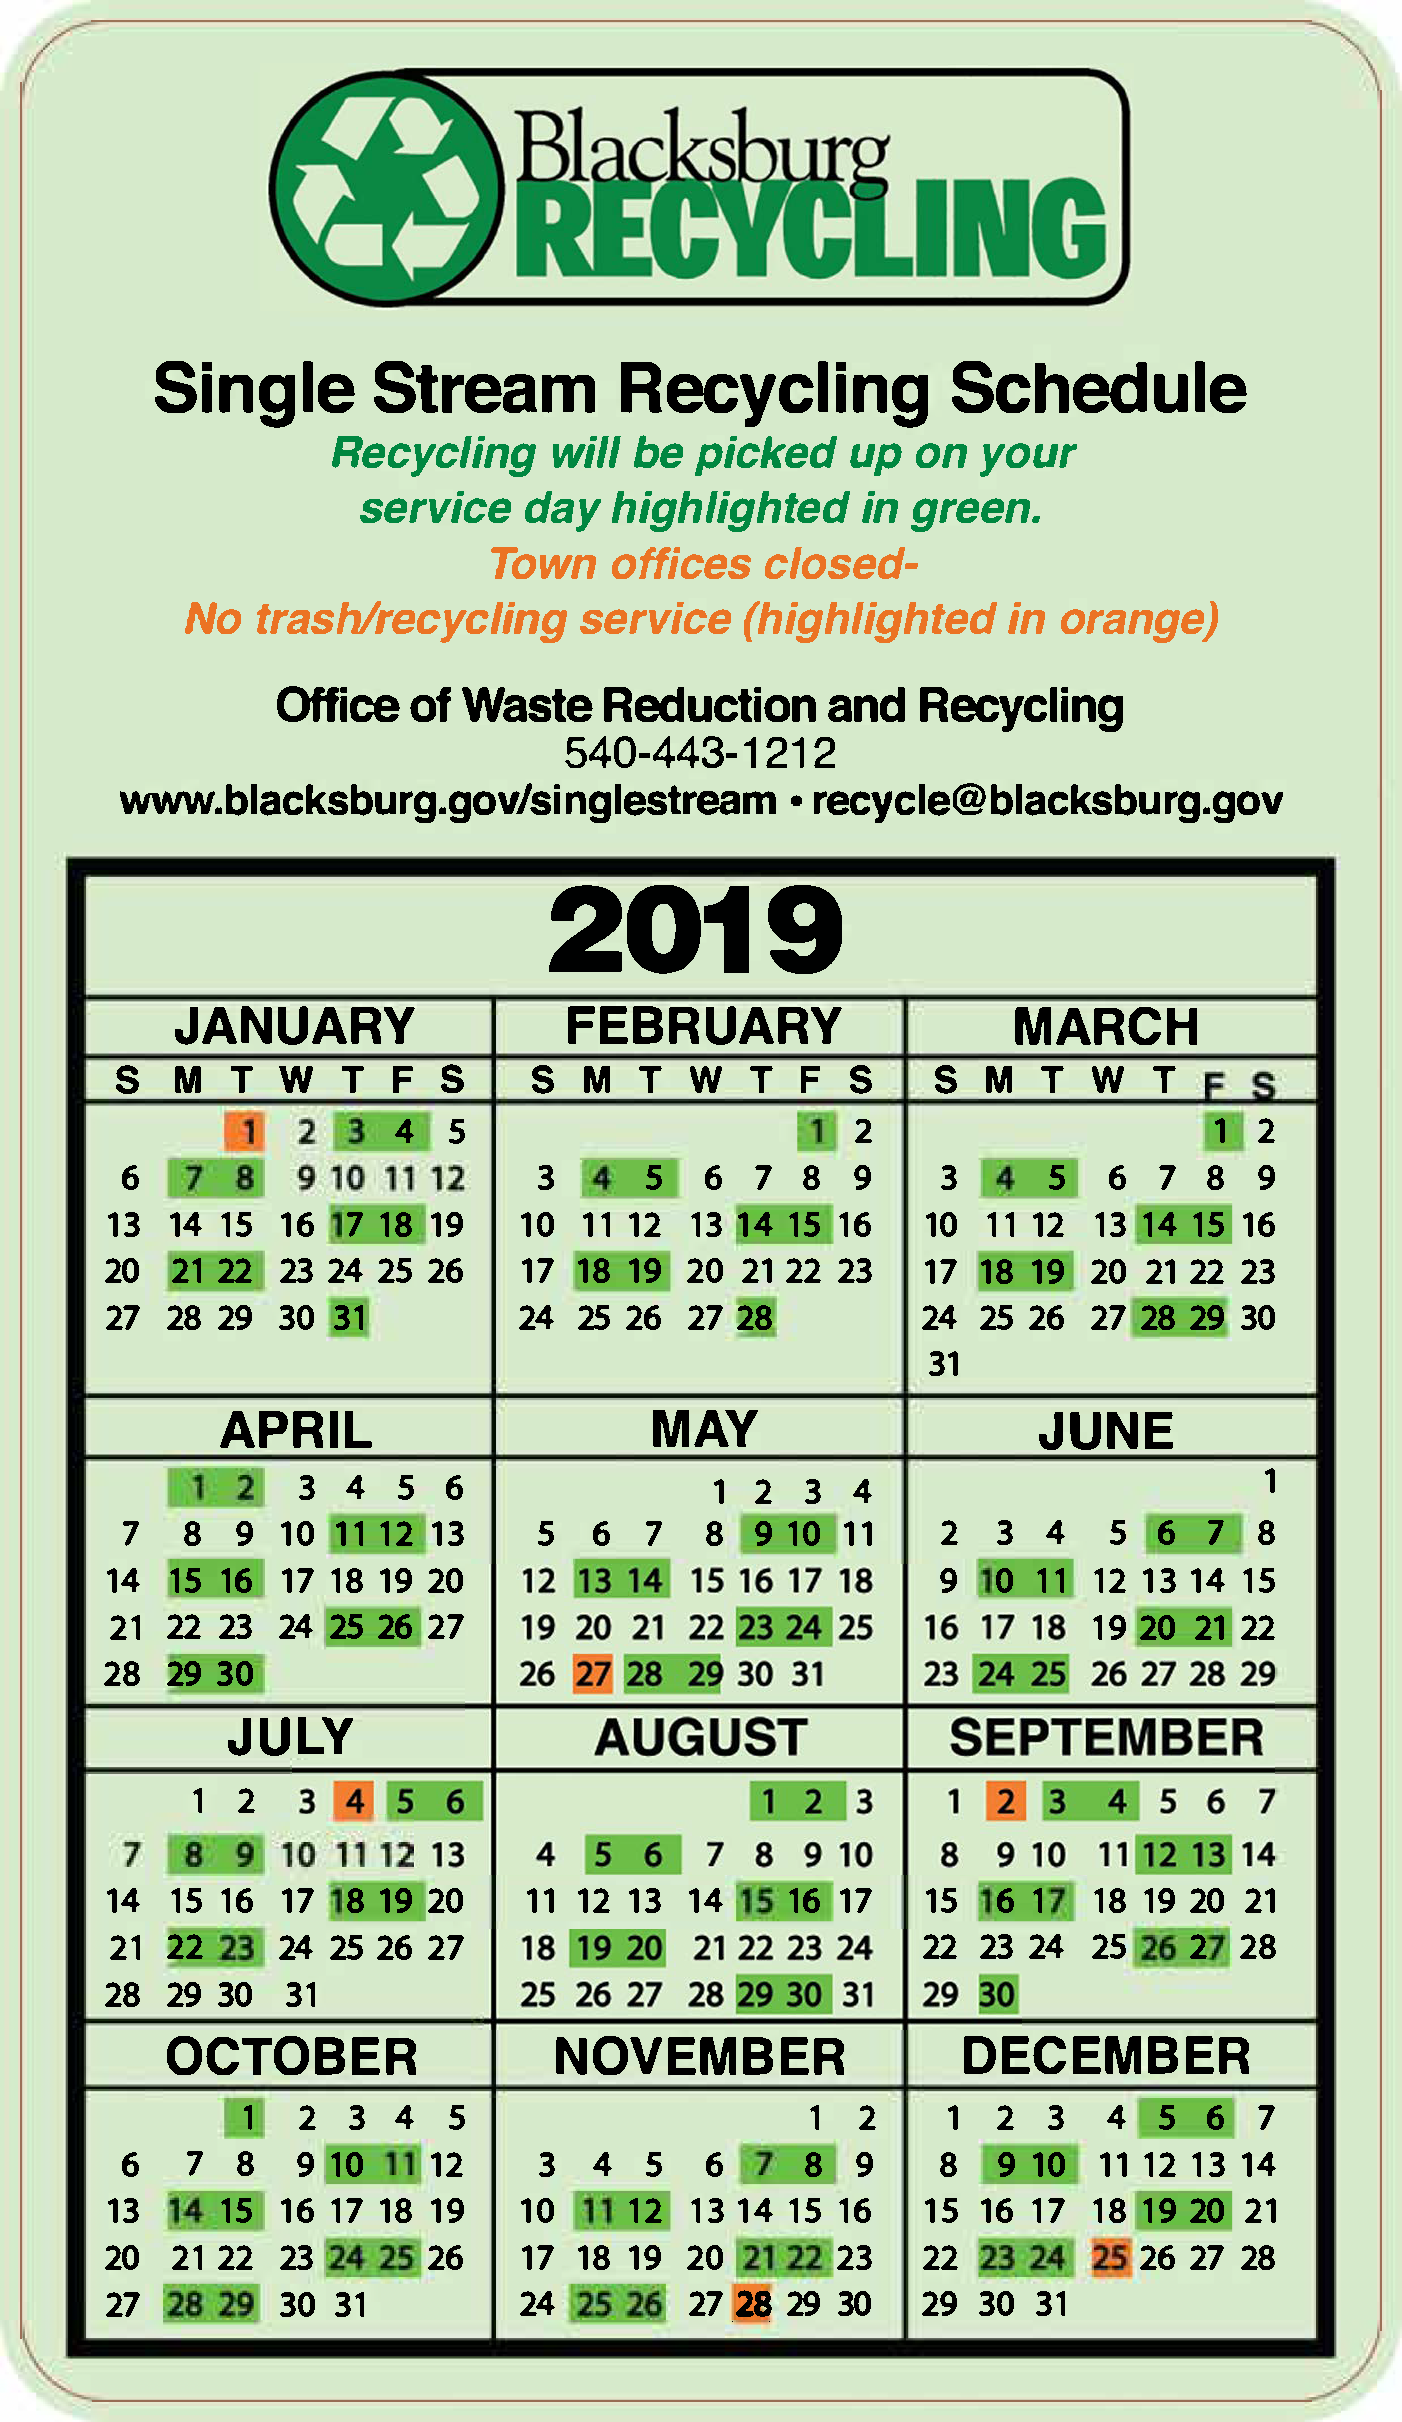 2019 Recycling calendar listing the recycling dates in green